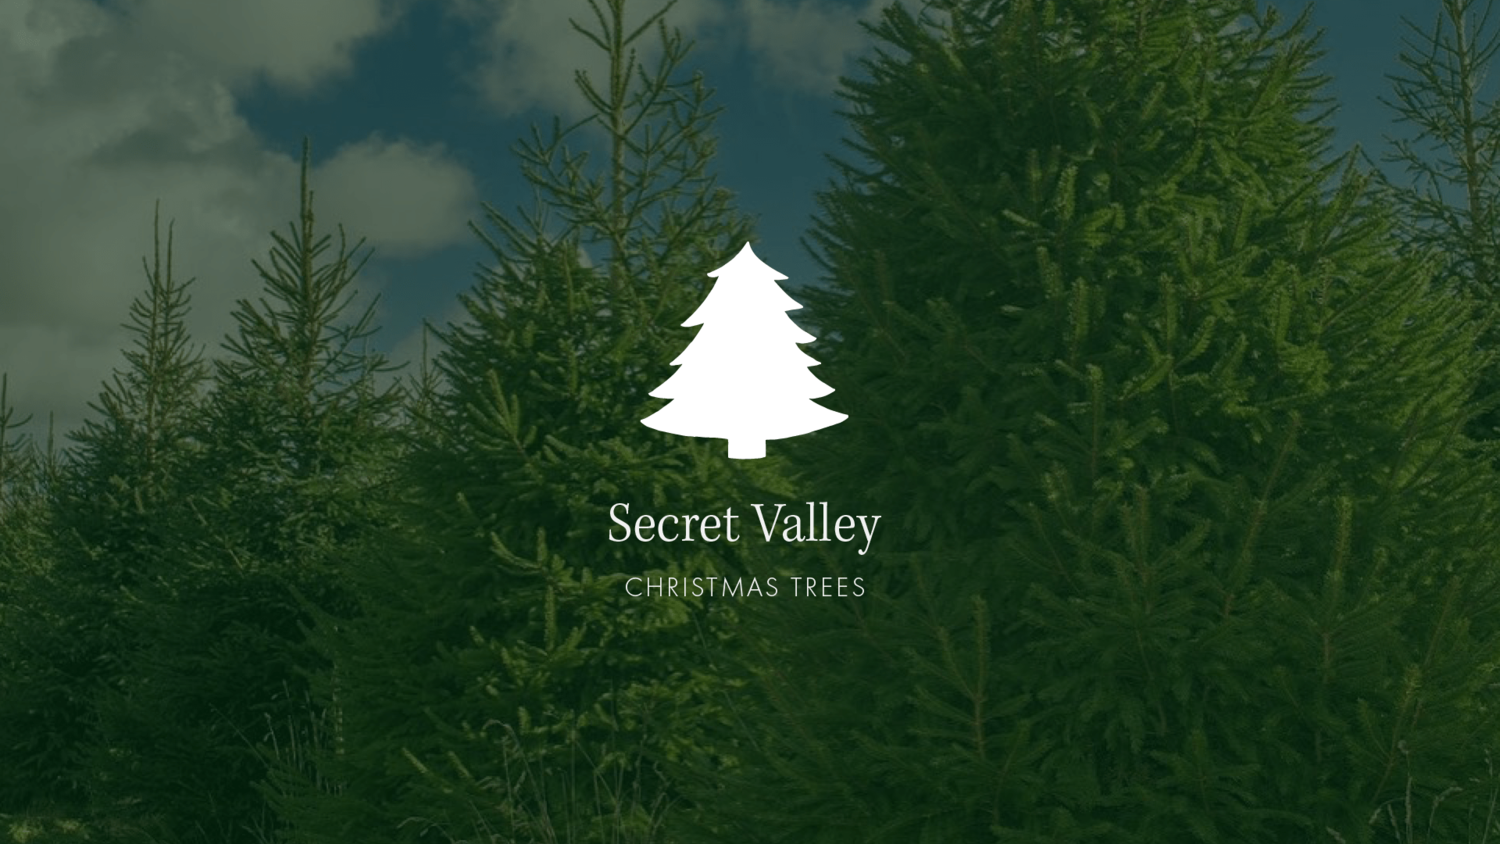 Somerset Christmas Trees From £12 - While Stocks Last! — Christmas Trees In  Somerset